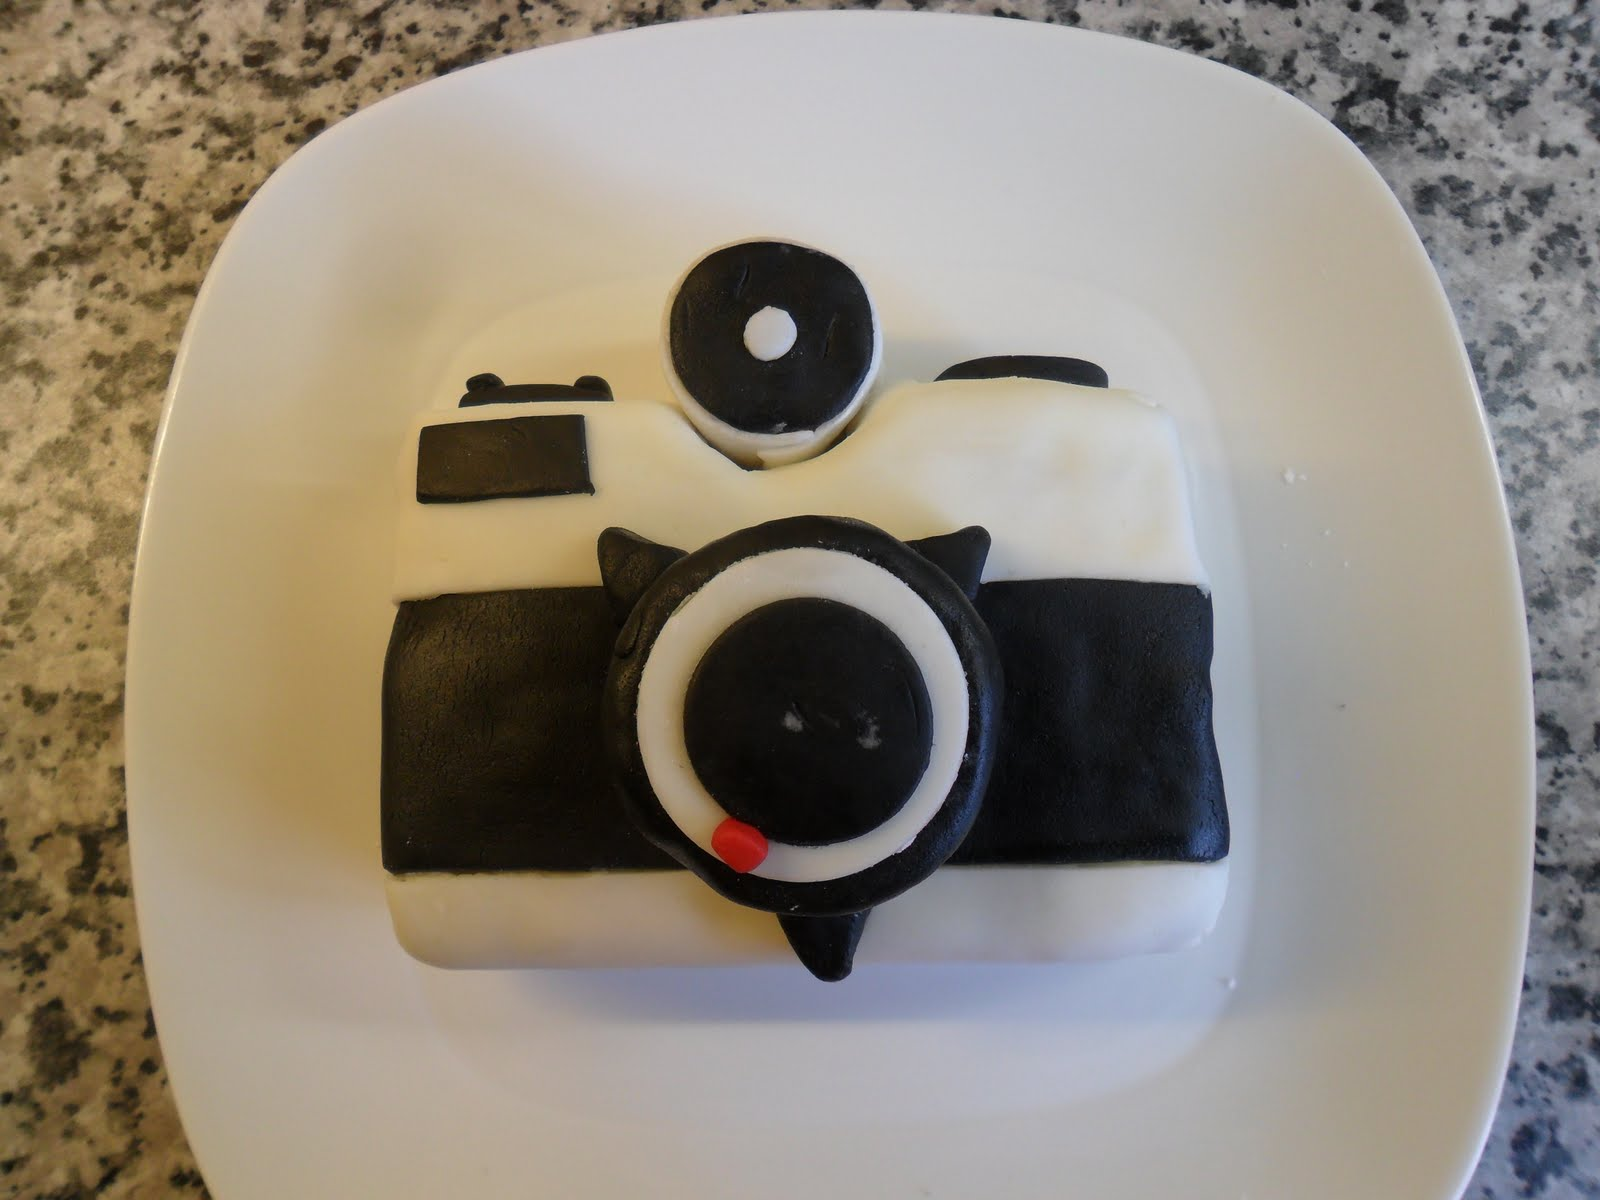 Cake inspired by a Fuji Pet camera and designed by Adam Robertson. Adam  Robertson's blog